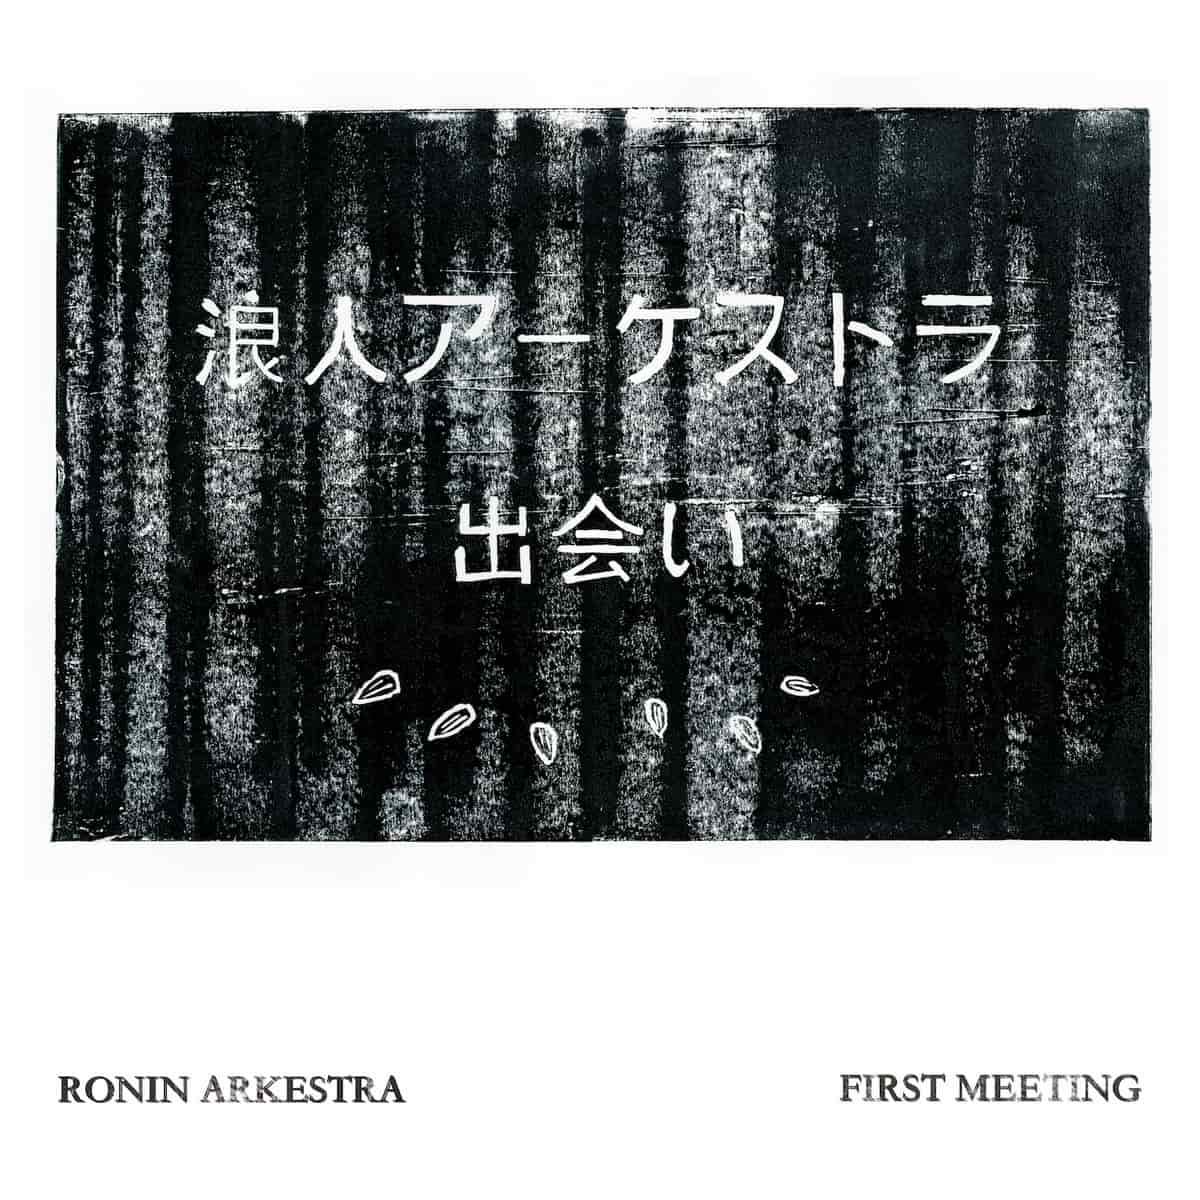 Qwest-TV-Ronin-Arkestra-First-Meeting-min(1)